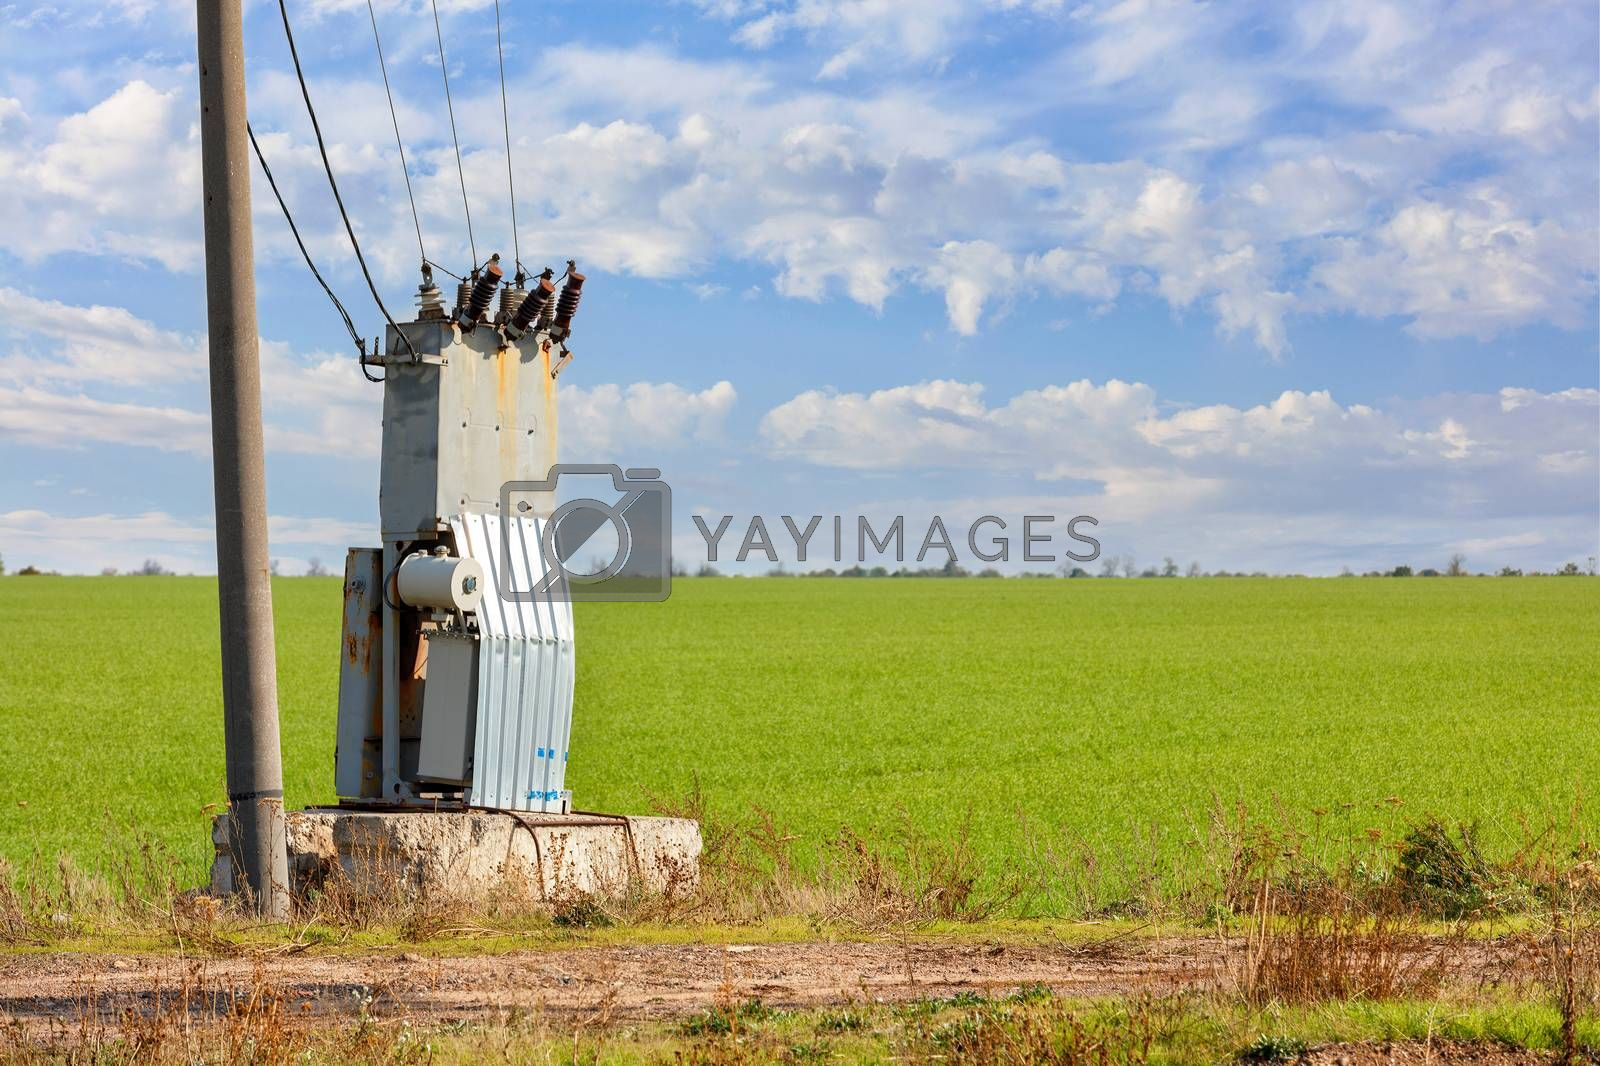 An old transformer station stands in the middle of a green field, near a concrete pillar, against a blue cloudy sky.